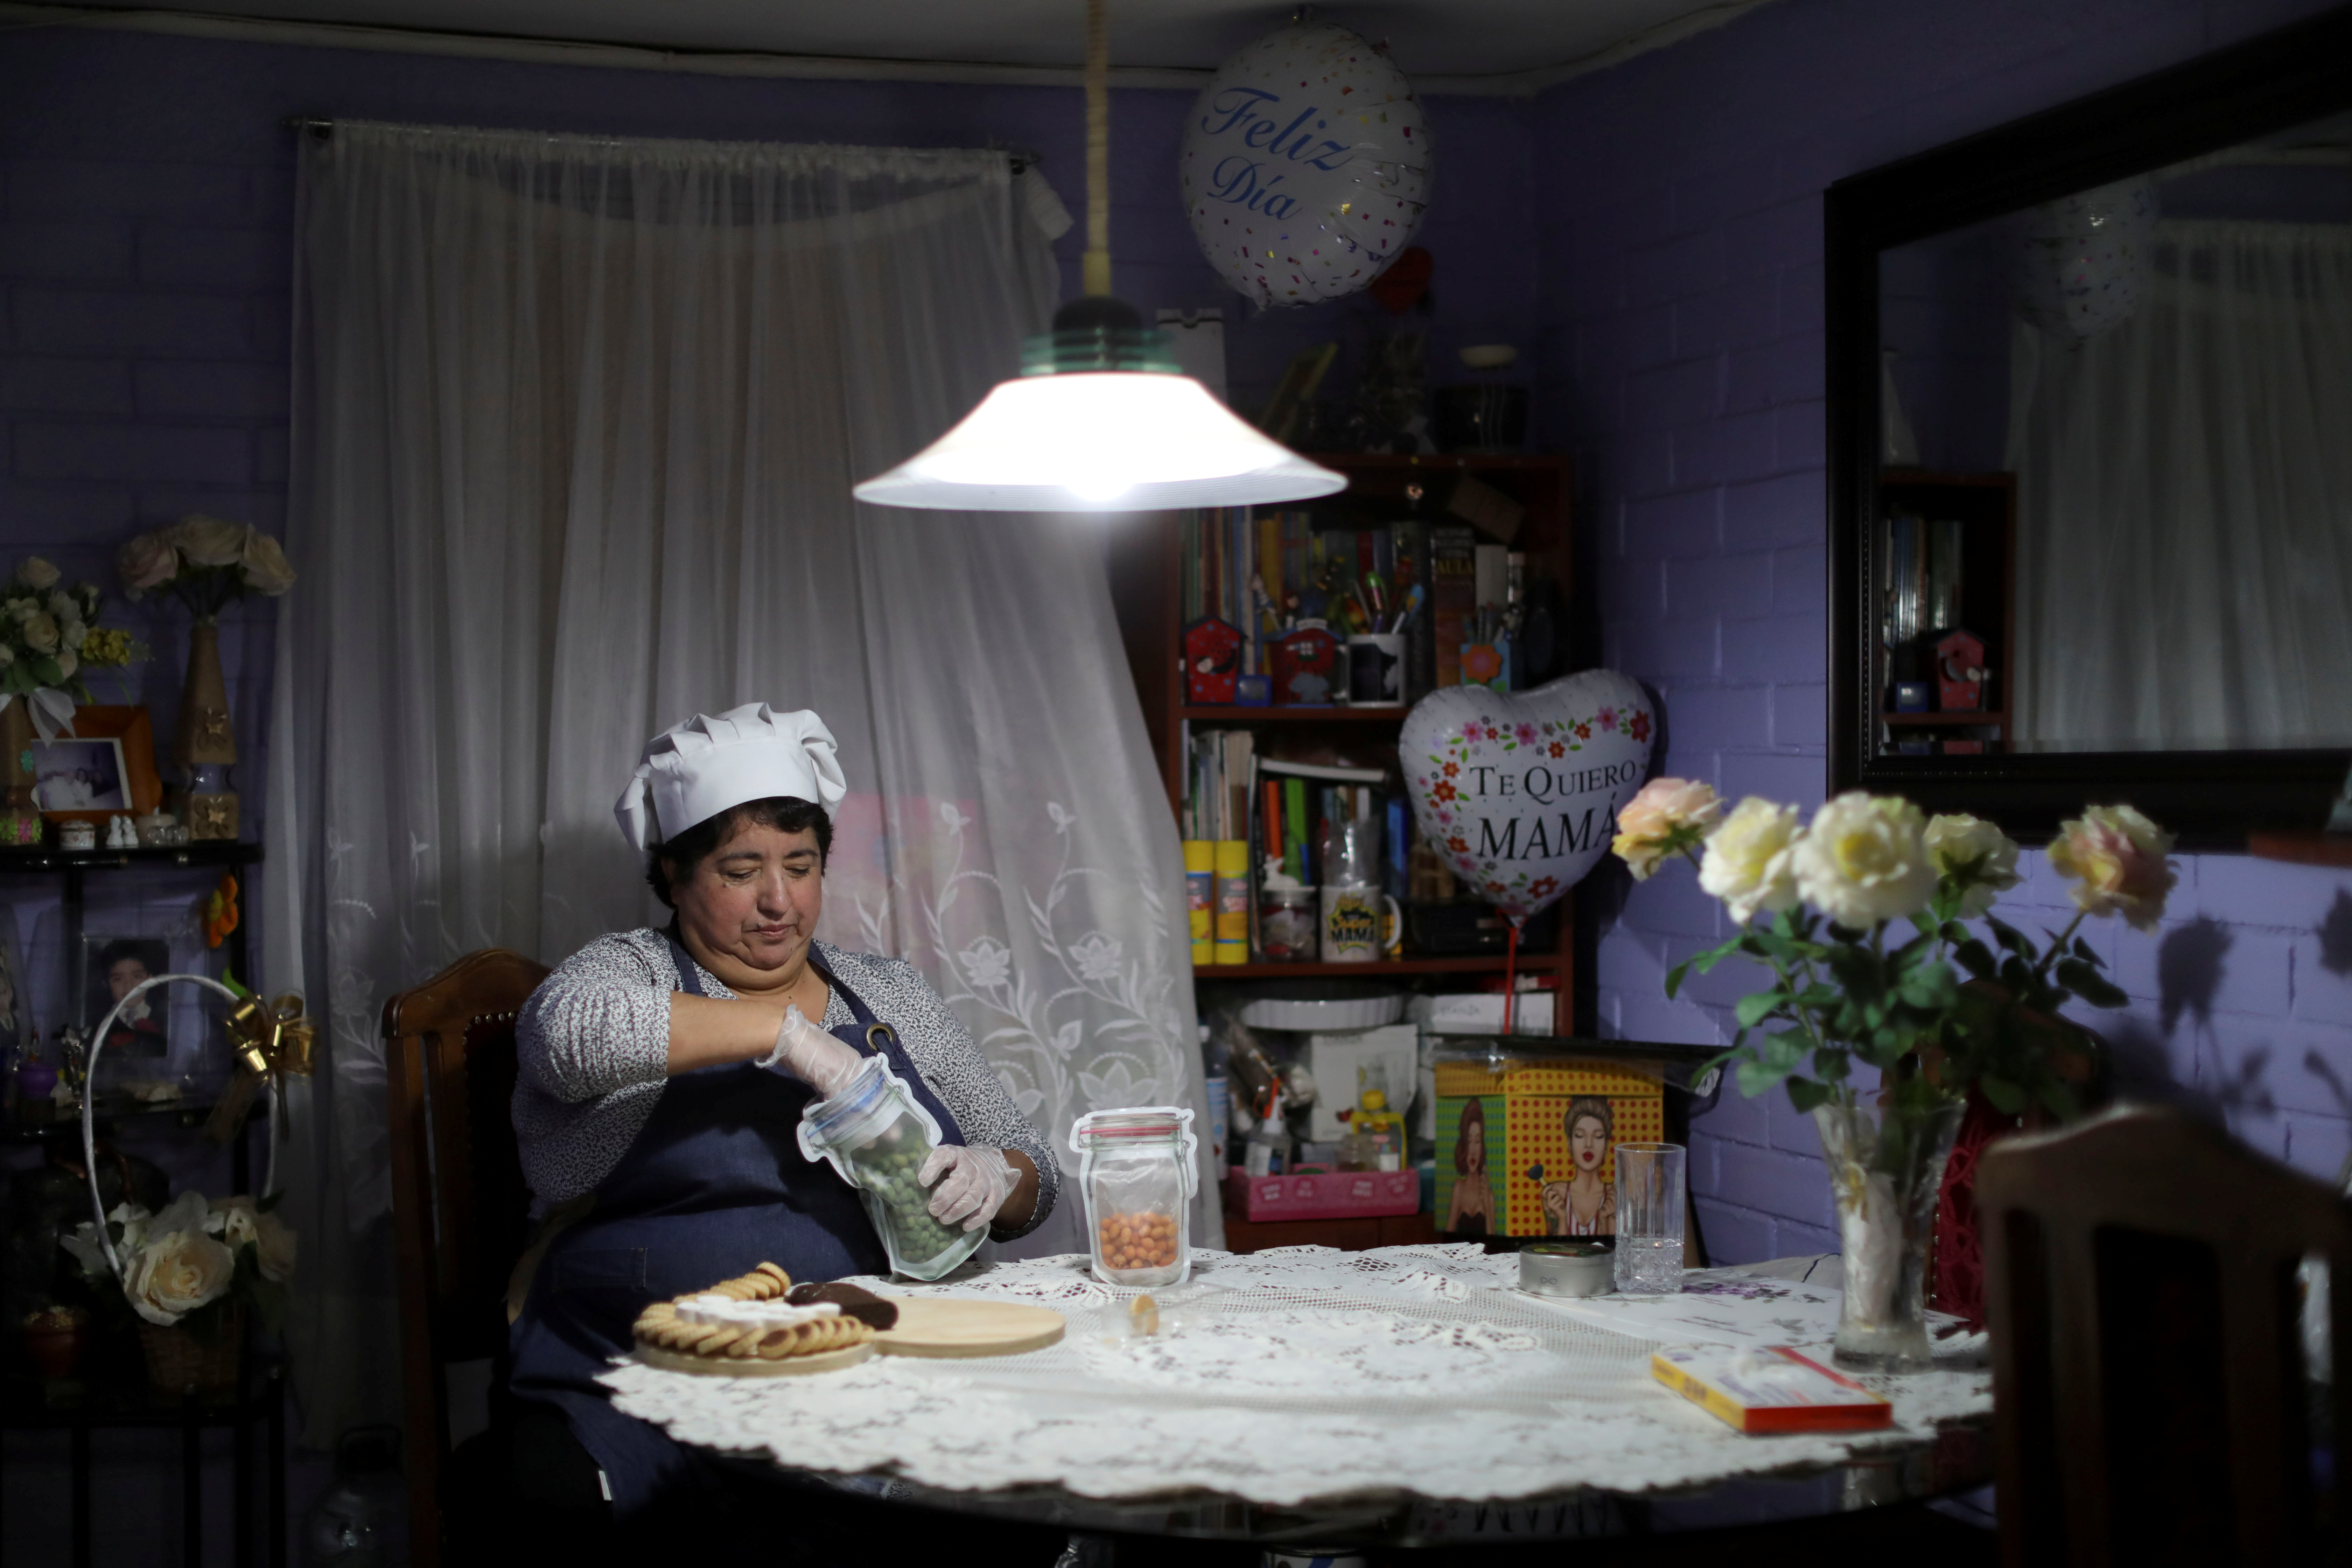 Rosa Navarro, 52, makes a tray with the breakfast she prepares to sell, after the coronavirus disease (COVID-19) restrictions affected her work, in Santiago, Chile September 7, 2021. Latin America's mothers are lagging behind in the pandemic of economic recovery, returning to the labor force more slowly than men, in a trend that experts say could set back female labor force participation for a decade across the region. Picture taken September 7, 2021. REUTERS/Pablo Sanhueza